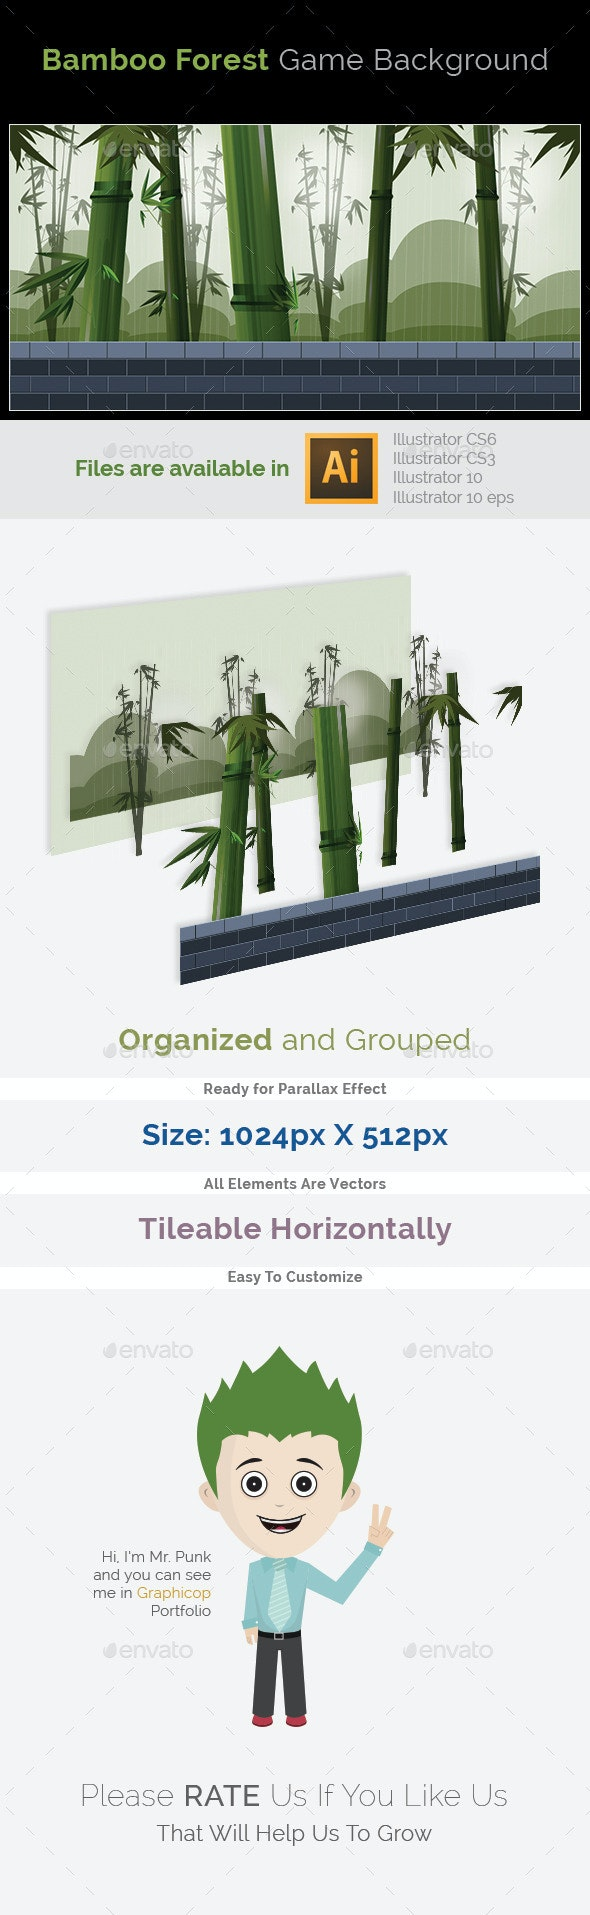 Game Background_Bamboo Forest - Backgrounds Game Assets